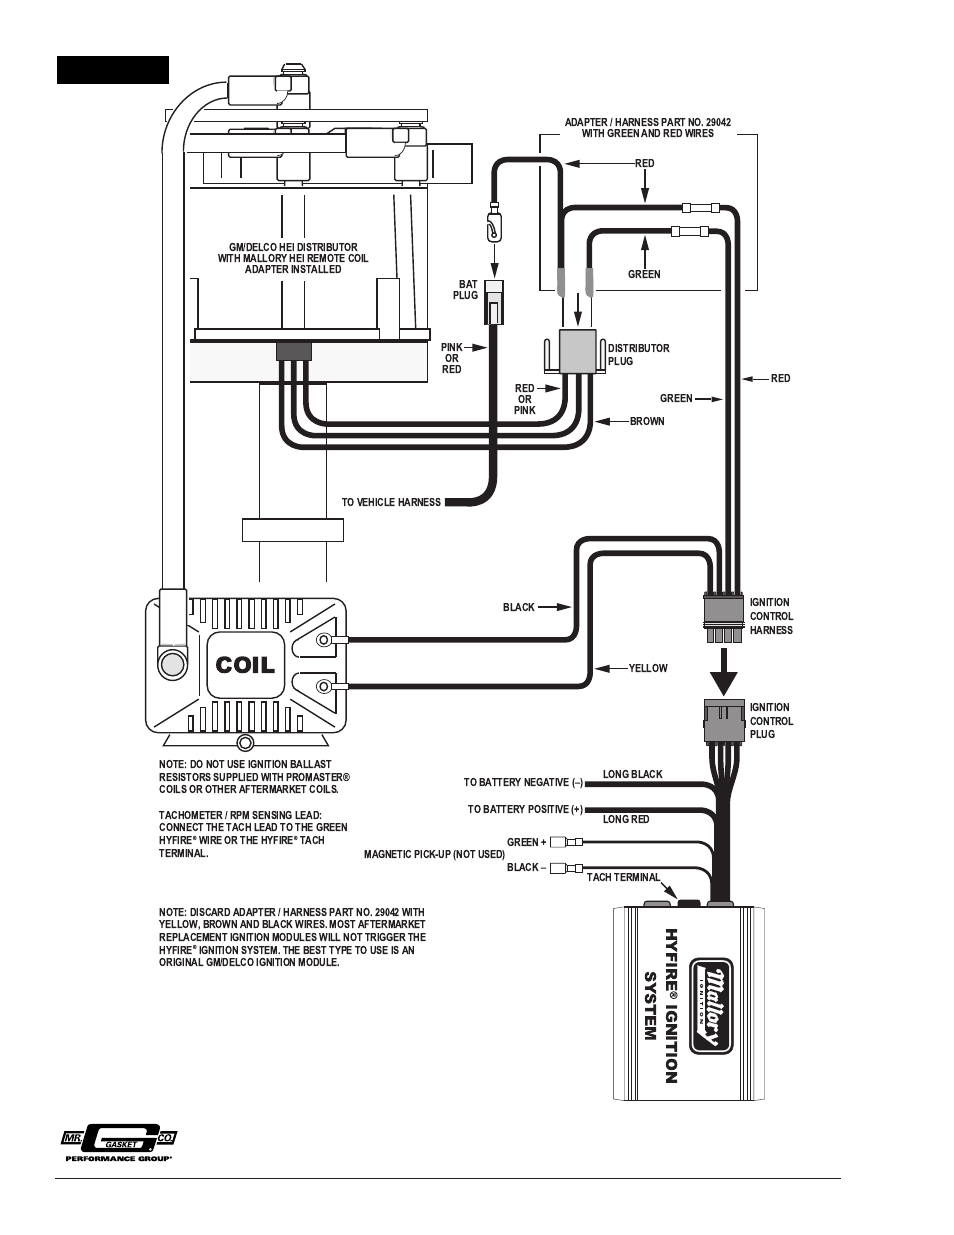 stunning hei ignition wiring diagram images images for image Hei Wiring Diagram best mallory ignition wiring  sc 1 st  Wiring Diagrams Free u2022 readyjetset.co : hei coil wiring - yogabreezes.com